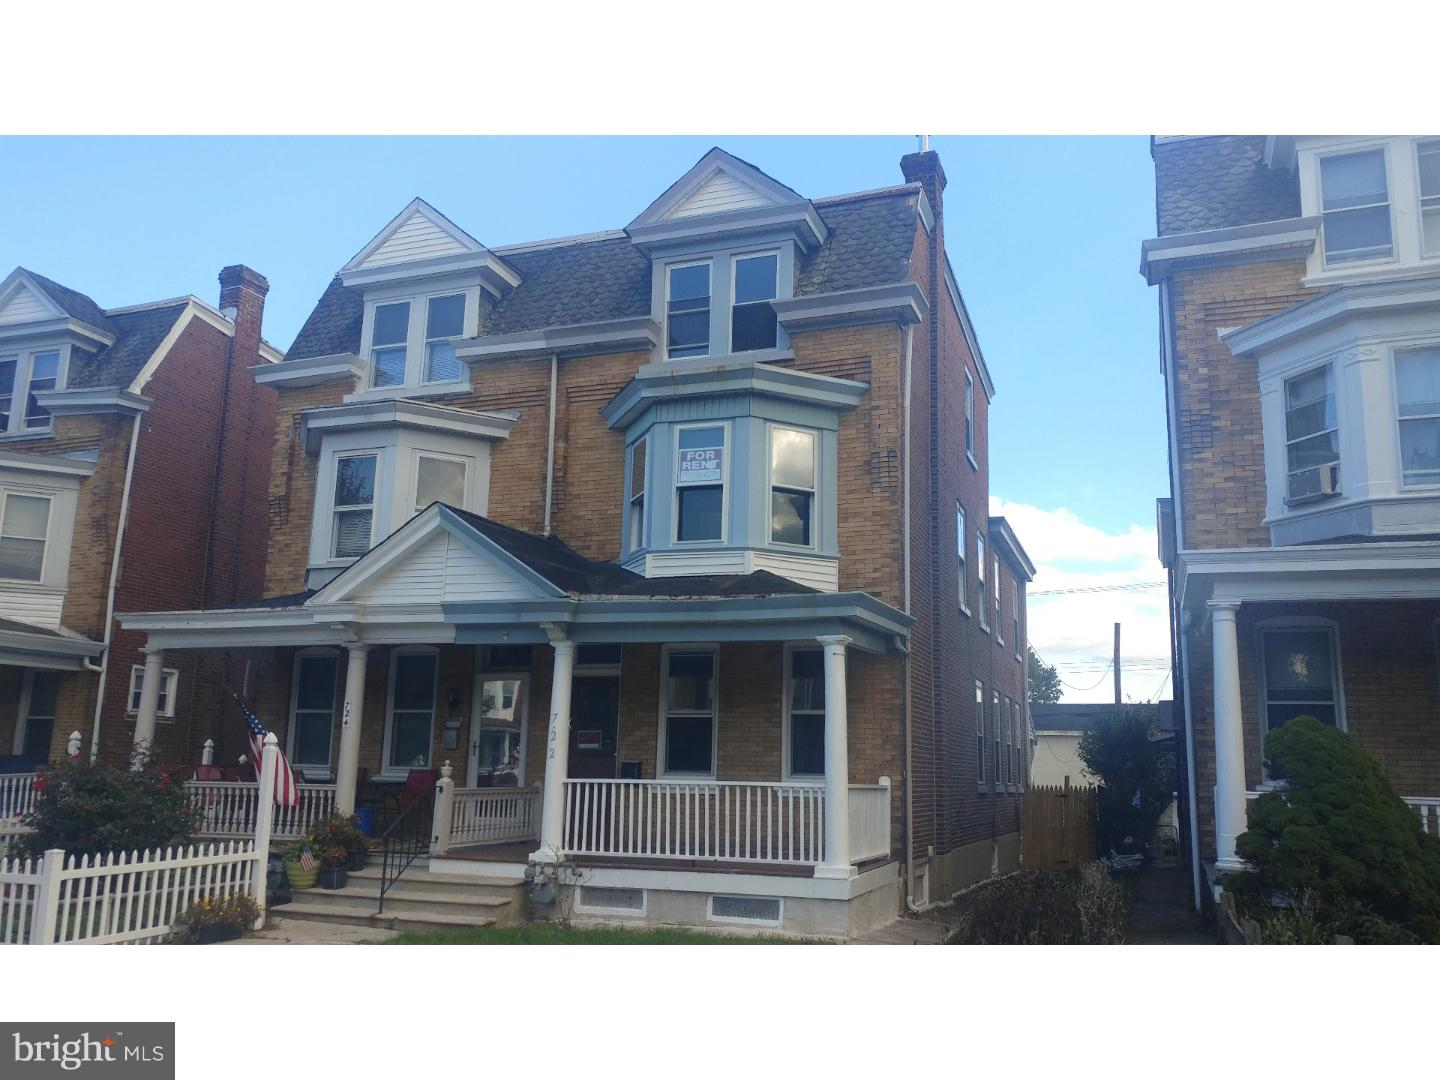 Property for Rent at 722 HAWS Avenue Norristown, Pennsylvania 19401 United States